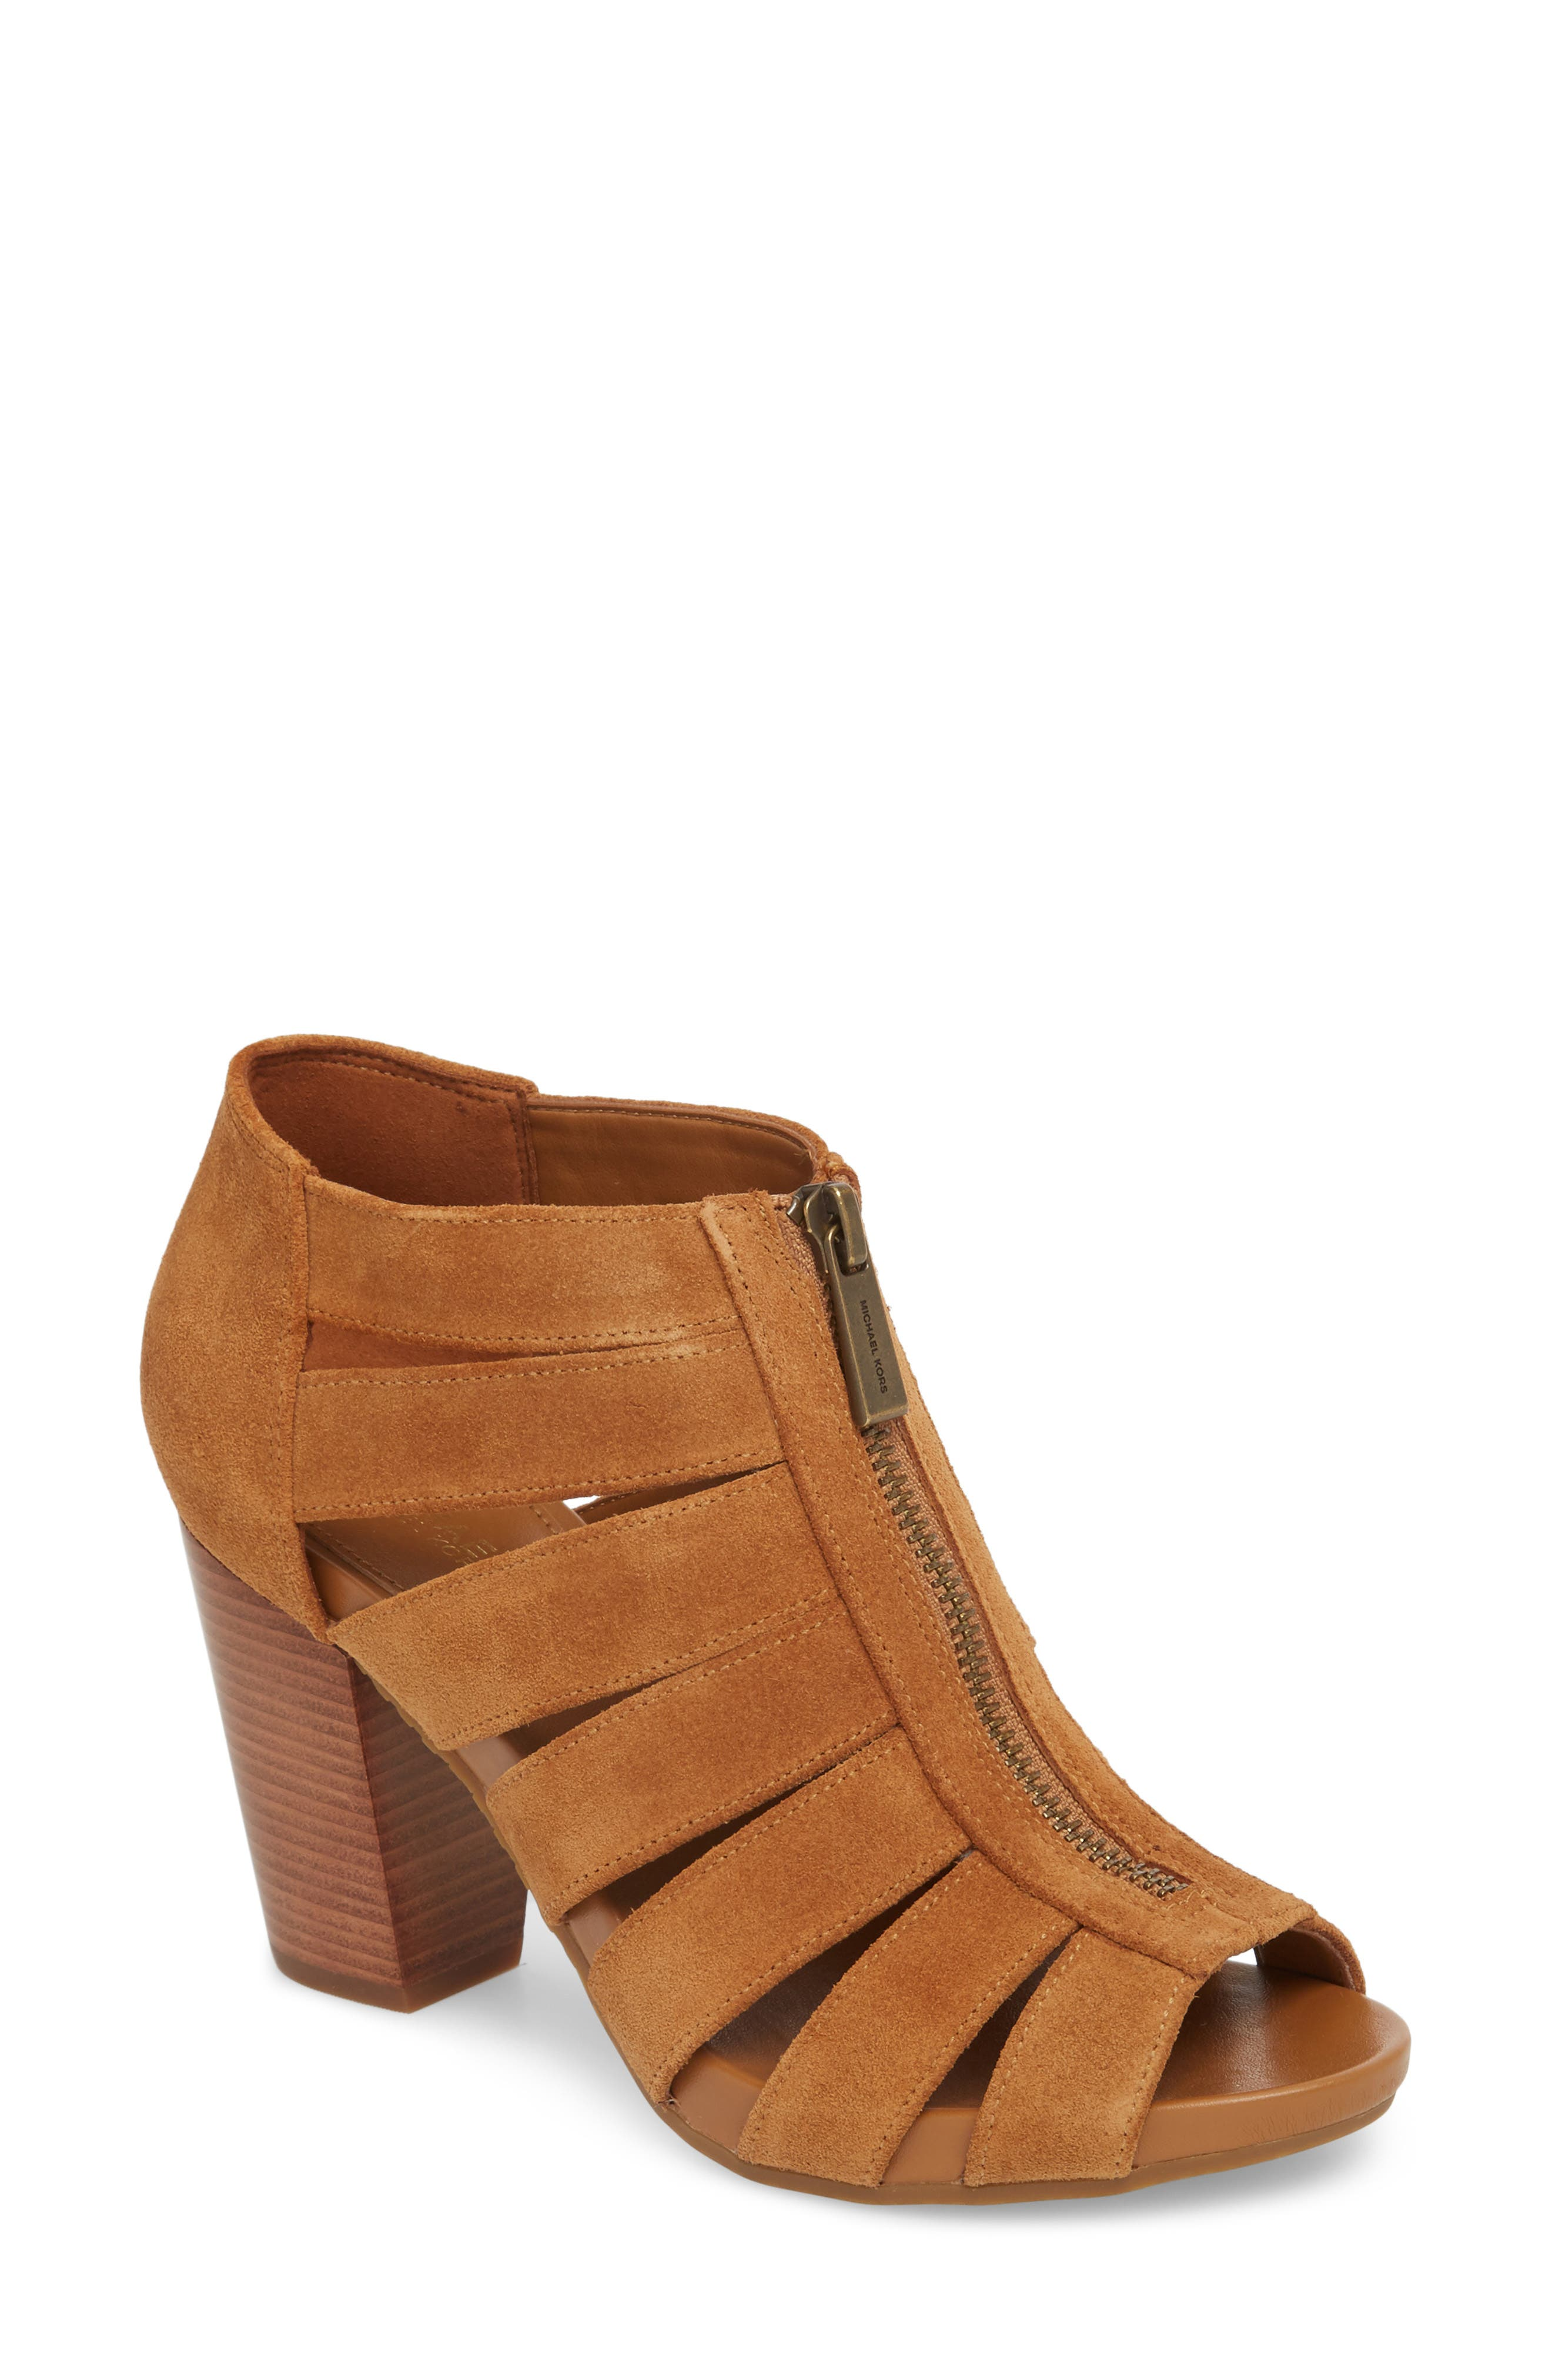 Sherry Cage Bootie,                             Main thumbnail 1, color,